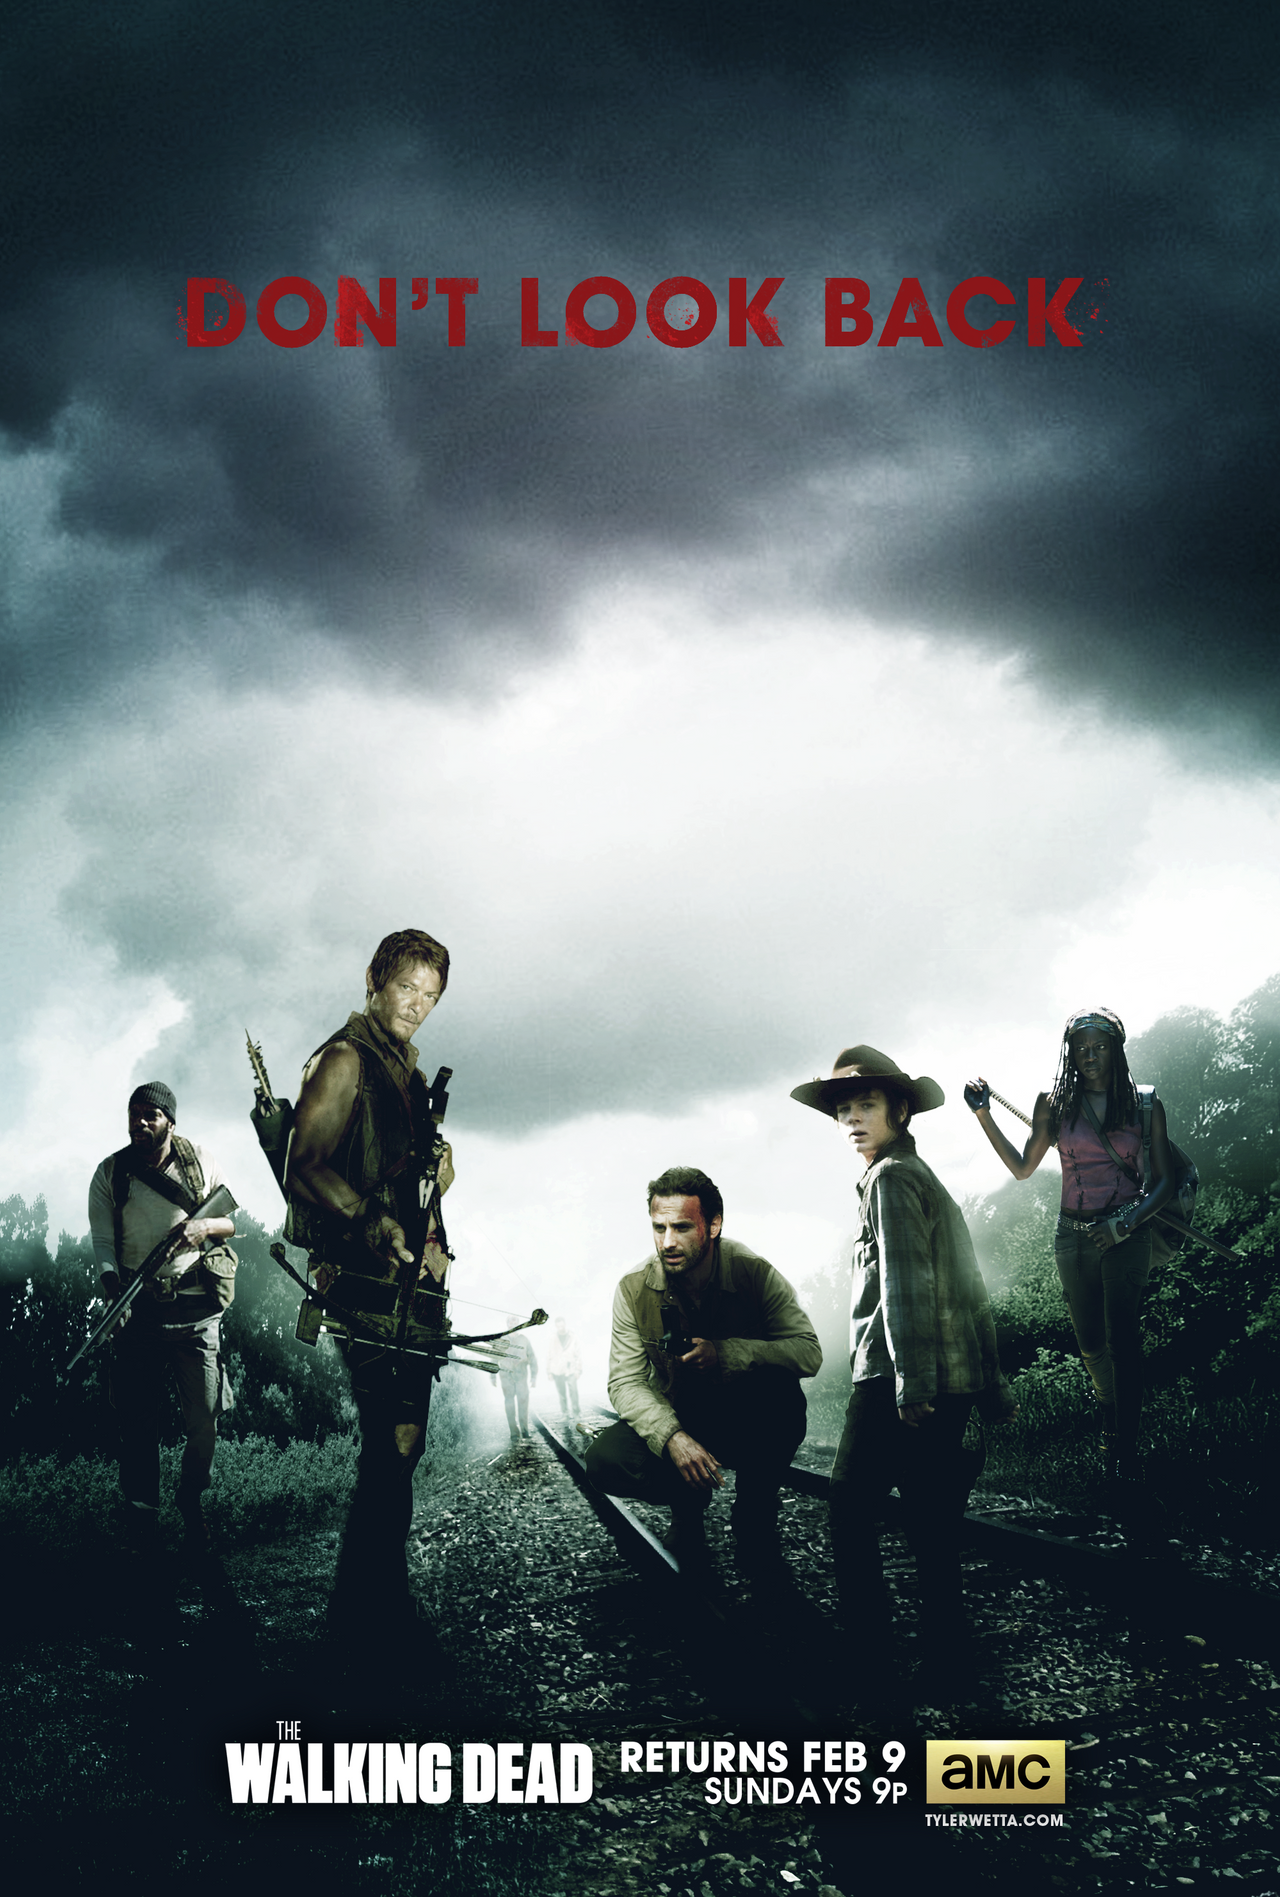 The Walking Dead Poster - Season 4 by tyler-wetta on DeviantArt